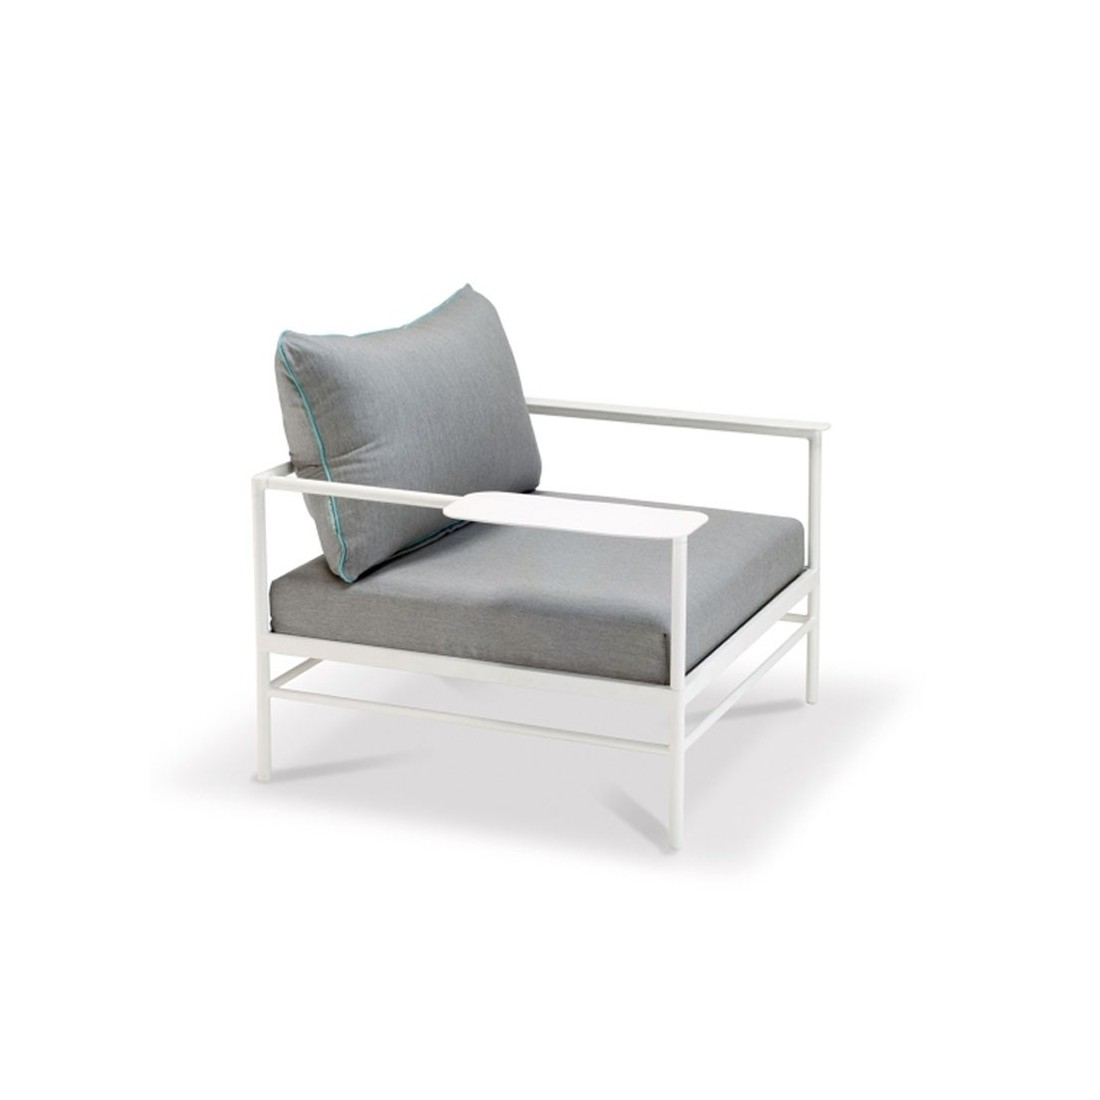 Fauteuil Rivage - Vlaemynck Roland Vlaemynck Confort Jardin